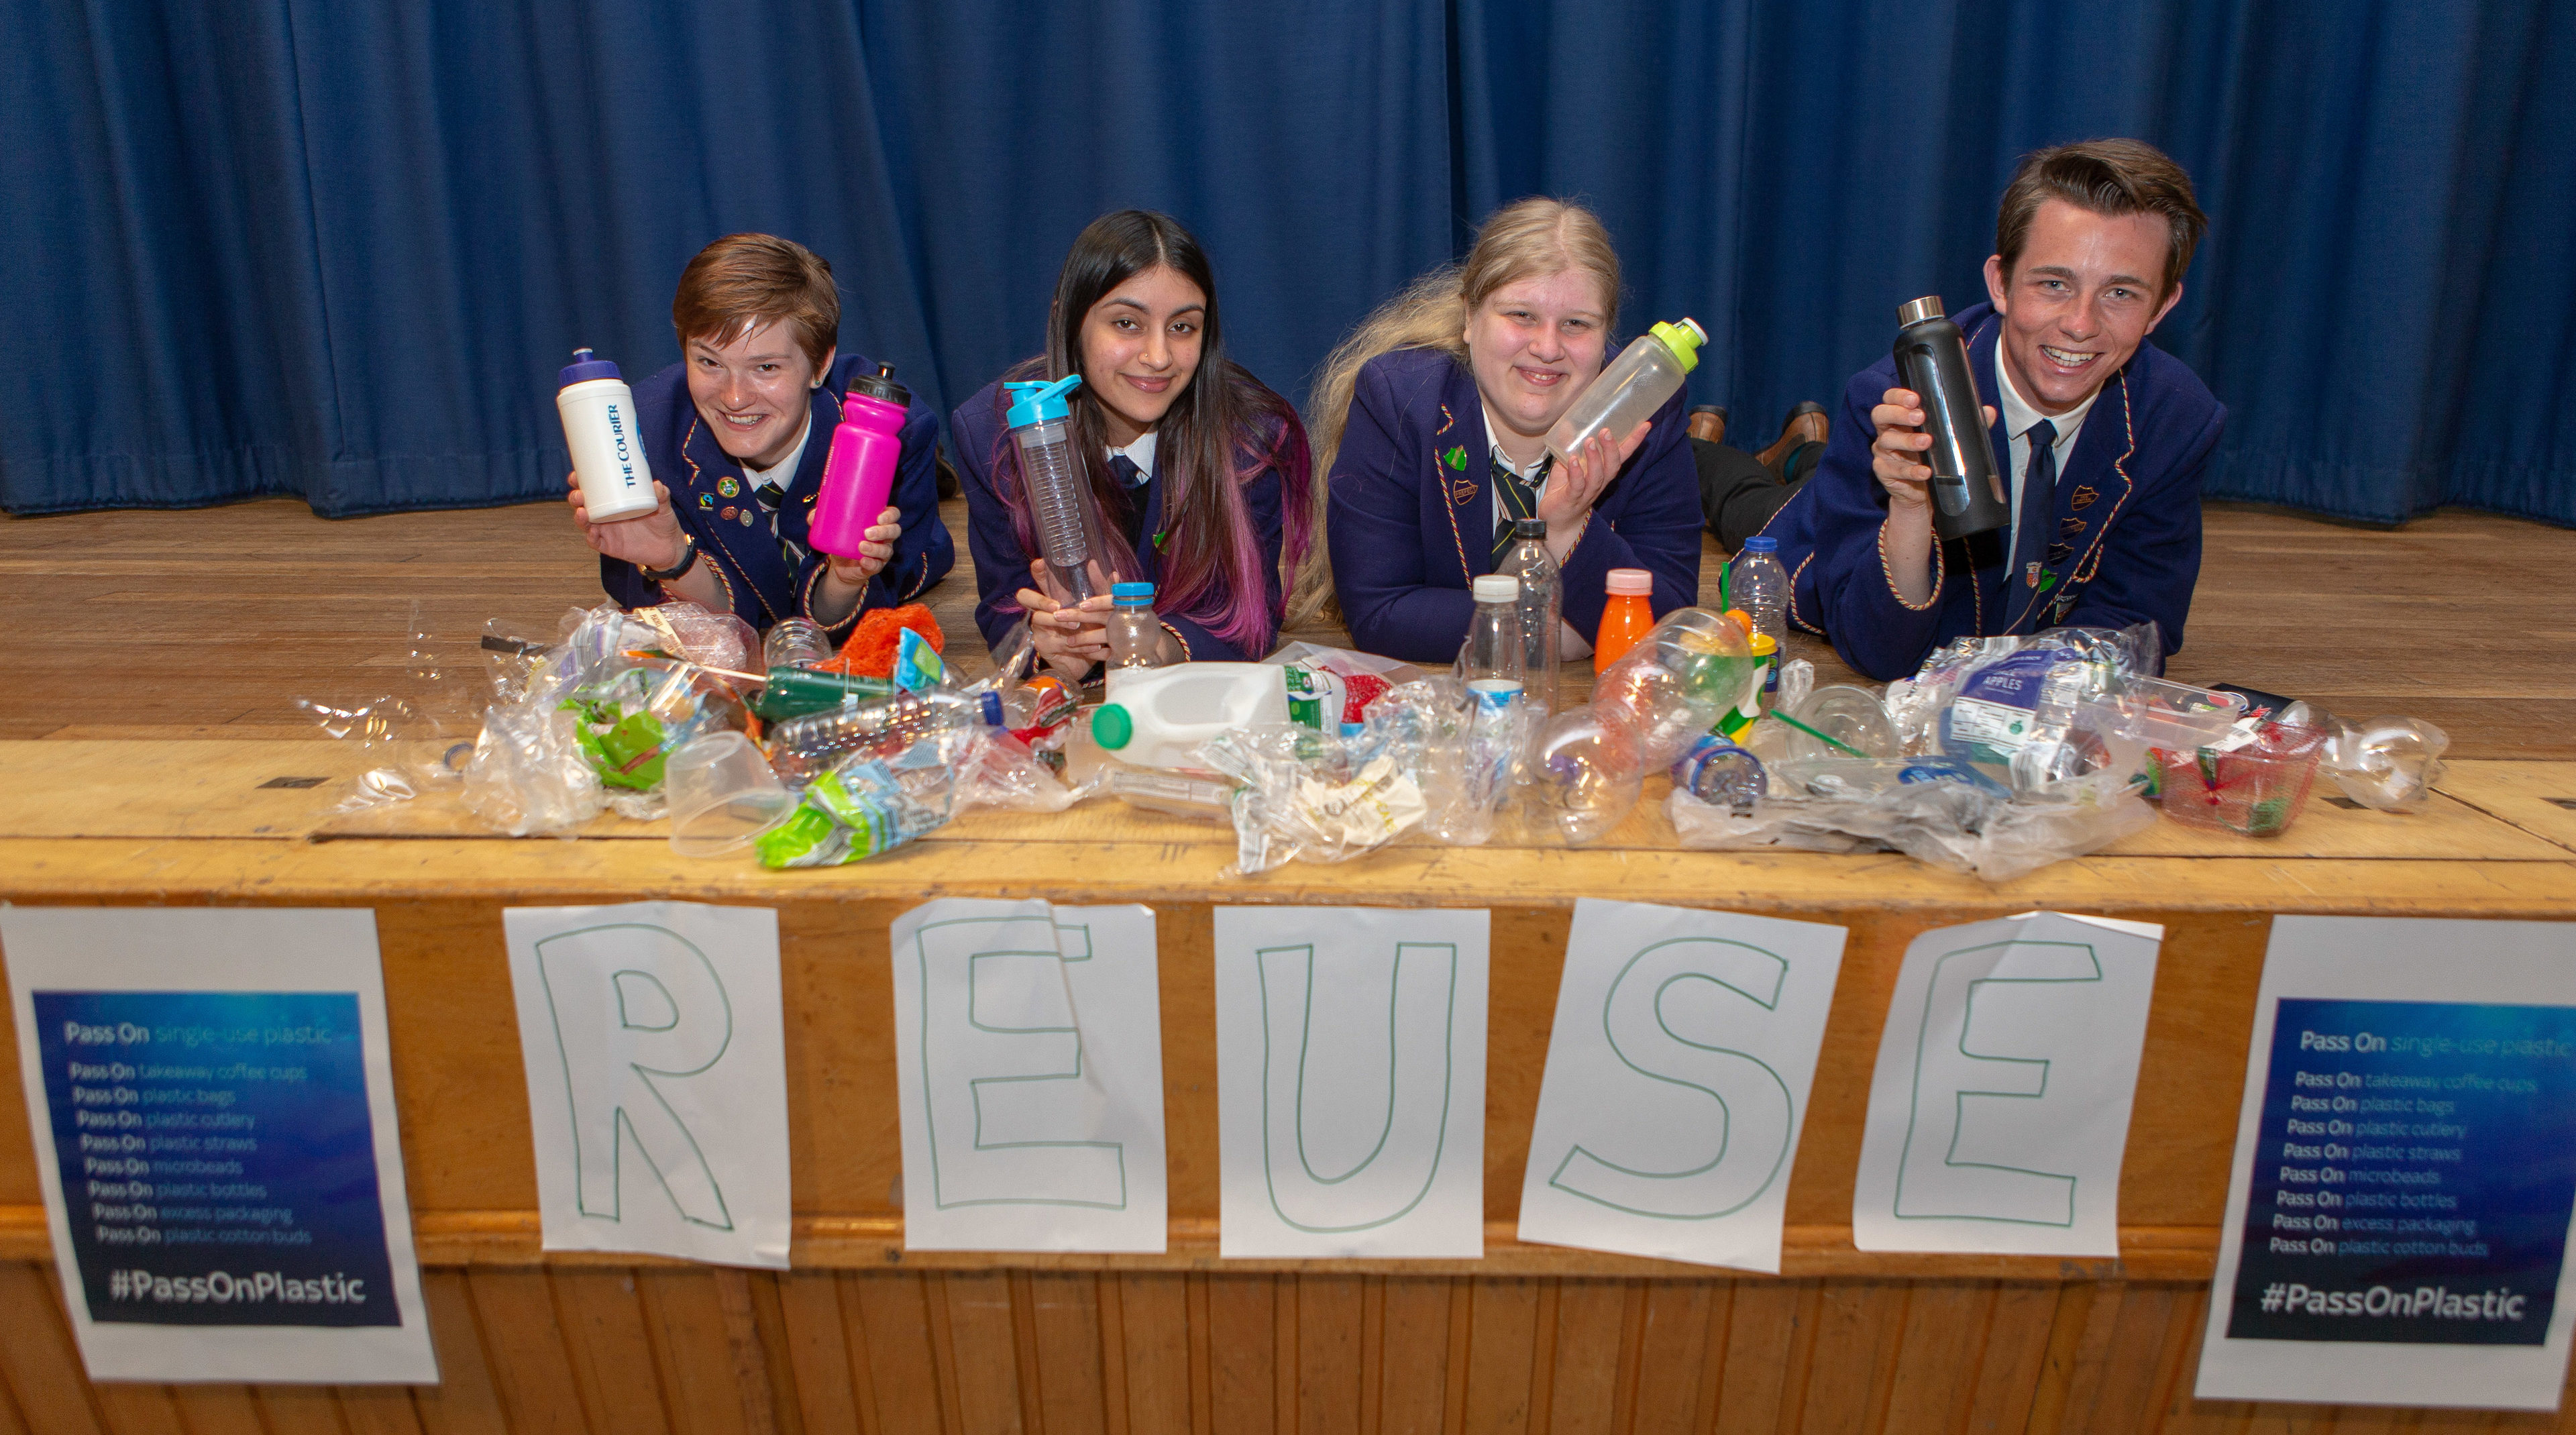 Courier News - Fife - Claire Warrender - Pass On Plastics Campaign story - CR0001468 - Cupar - Picture Shows: Left Charlotte Mofa (16), Rida Ashiq (17), Marije De Vries (17) and Cameron Drummond (17) of Bellbaxter High School with their Pass on Plastic campaign - Thursday 31st May 2018